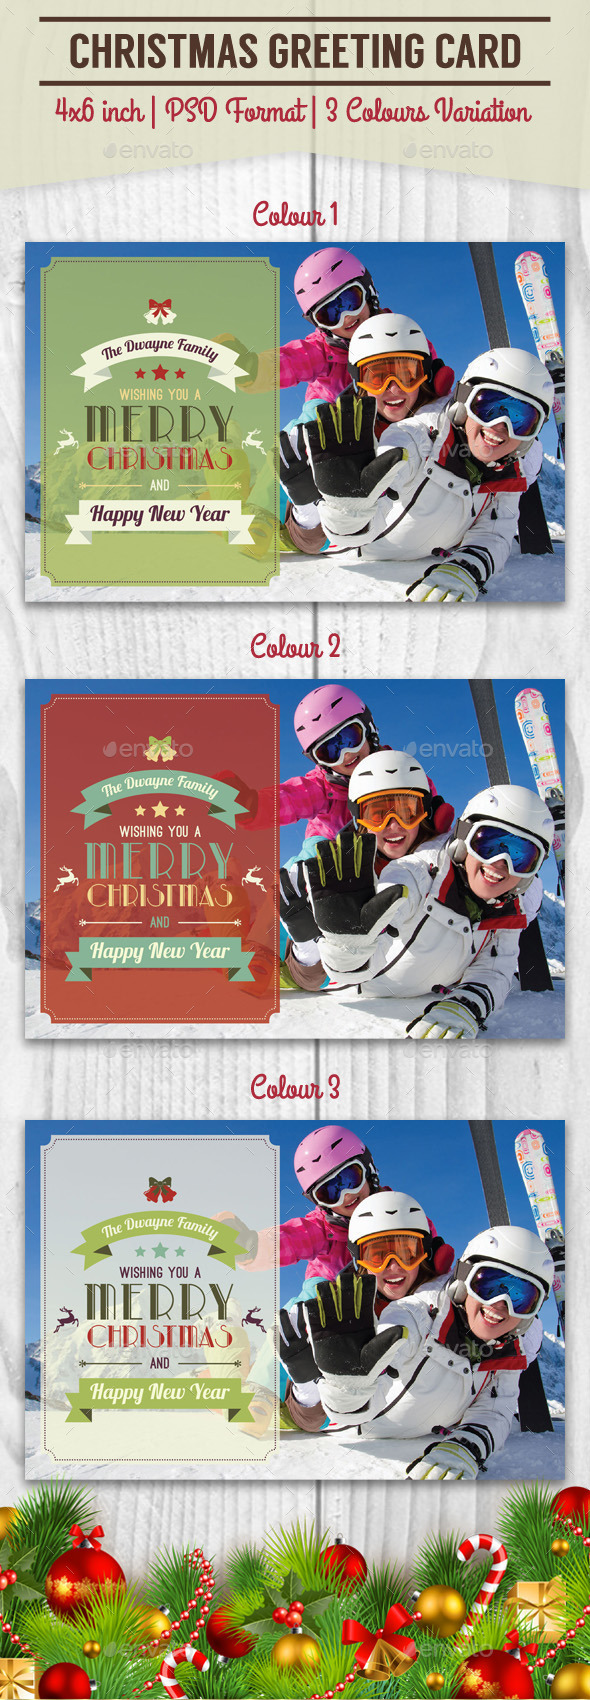 Christmas Greeting Card - 2 - Greeting Cards Cards & Invites